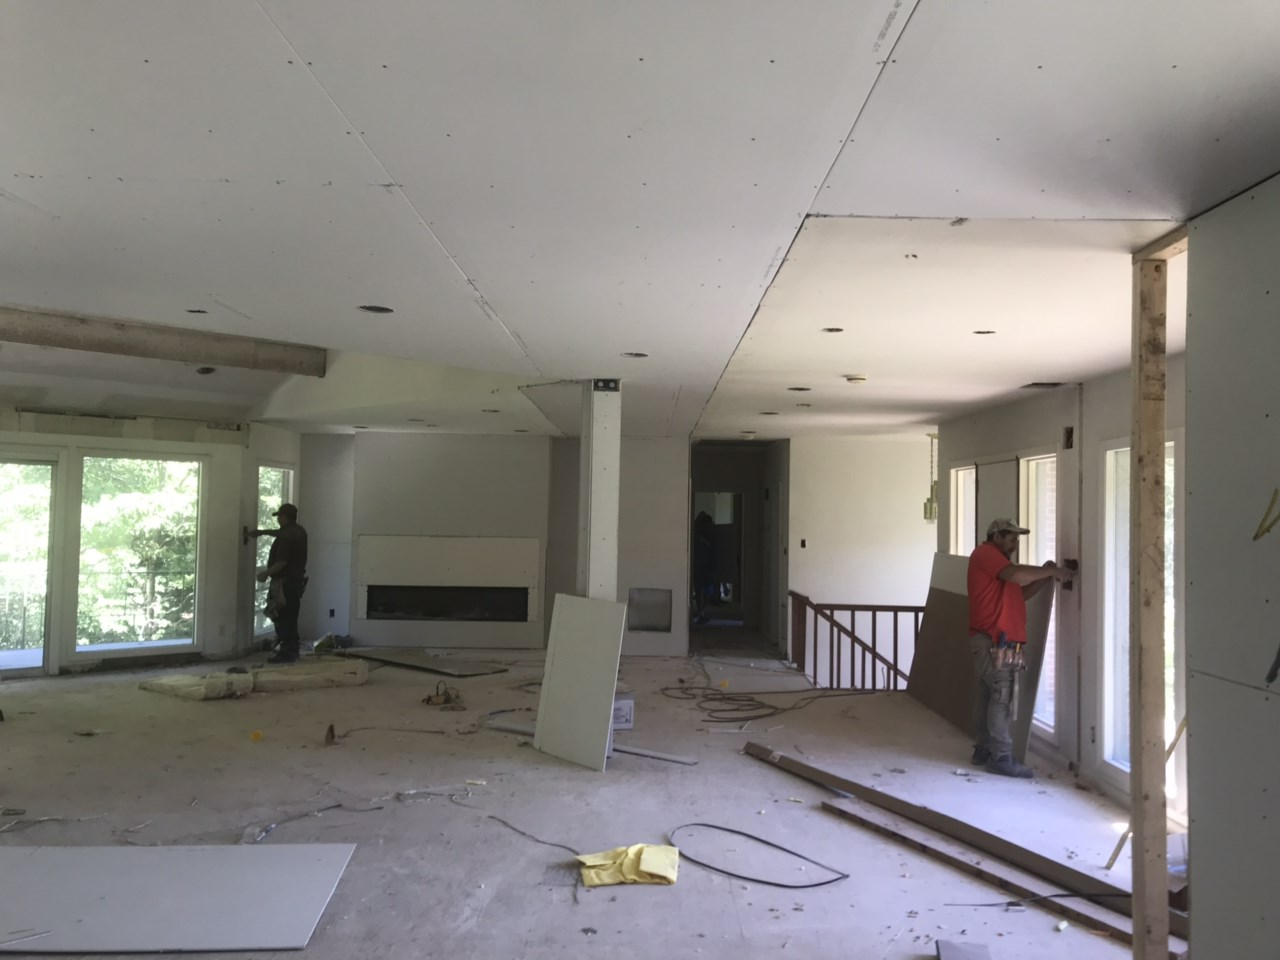 Hardwood flooring is going down and sheetrock is going up throughout the house.